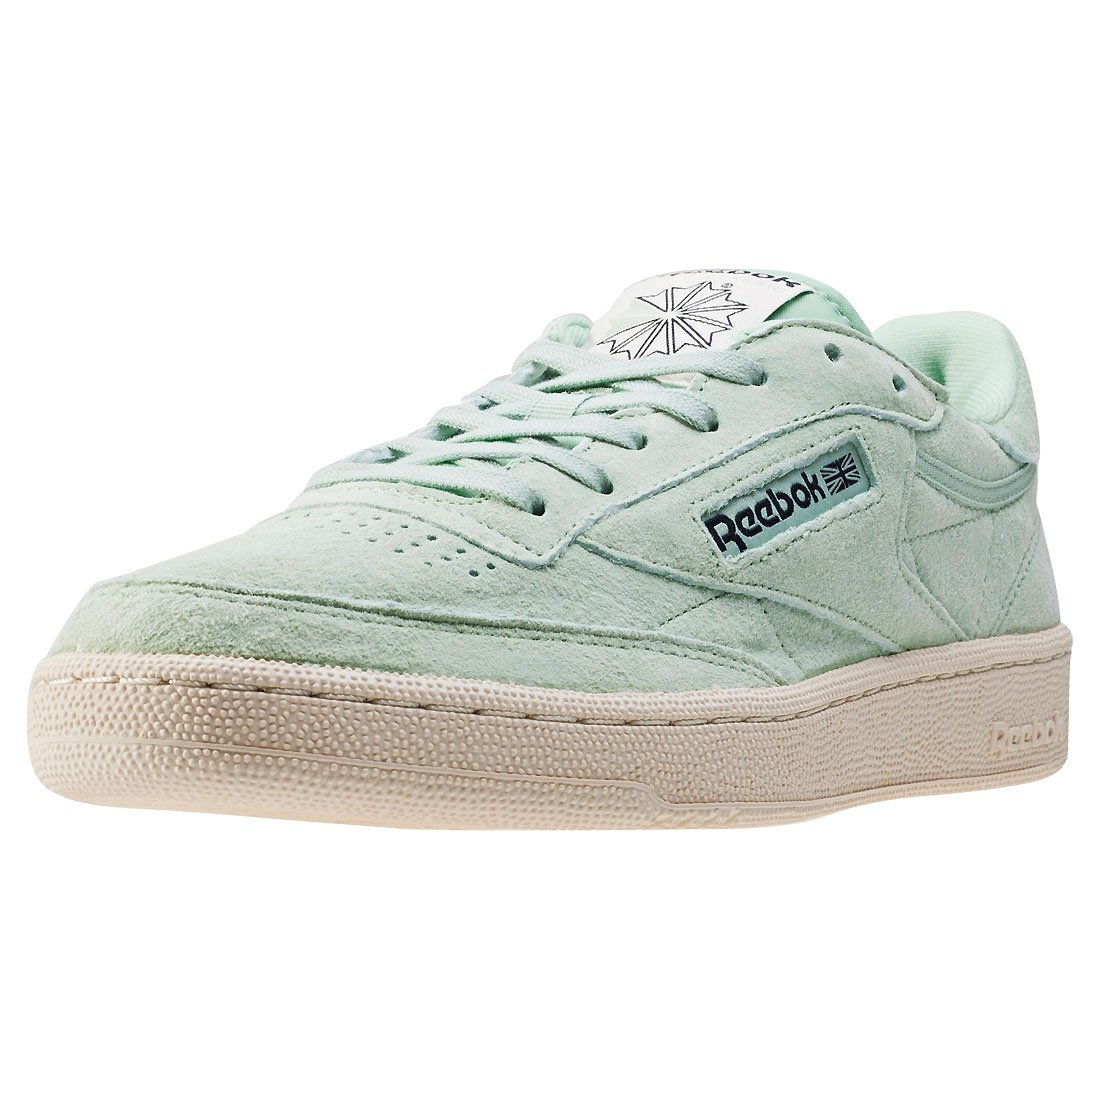 7ab13a7ee Reebok Club C 85 Pastels Unisex Trainers: Amazon.co.uk: Shoes & Bags